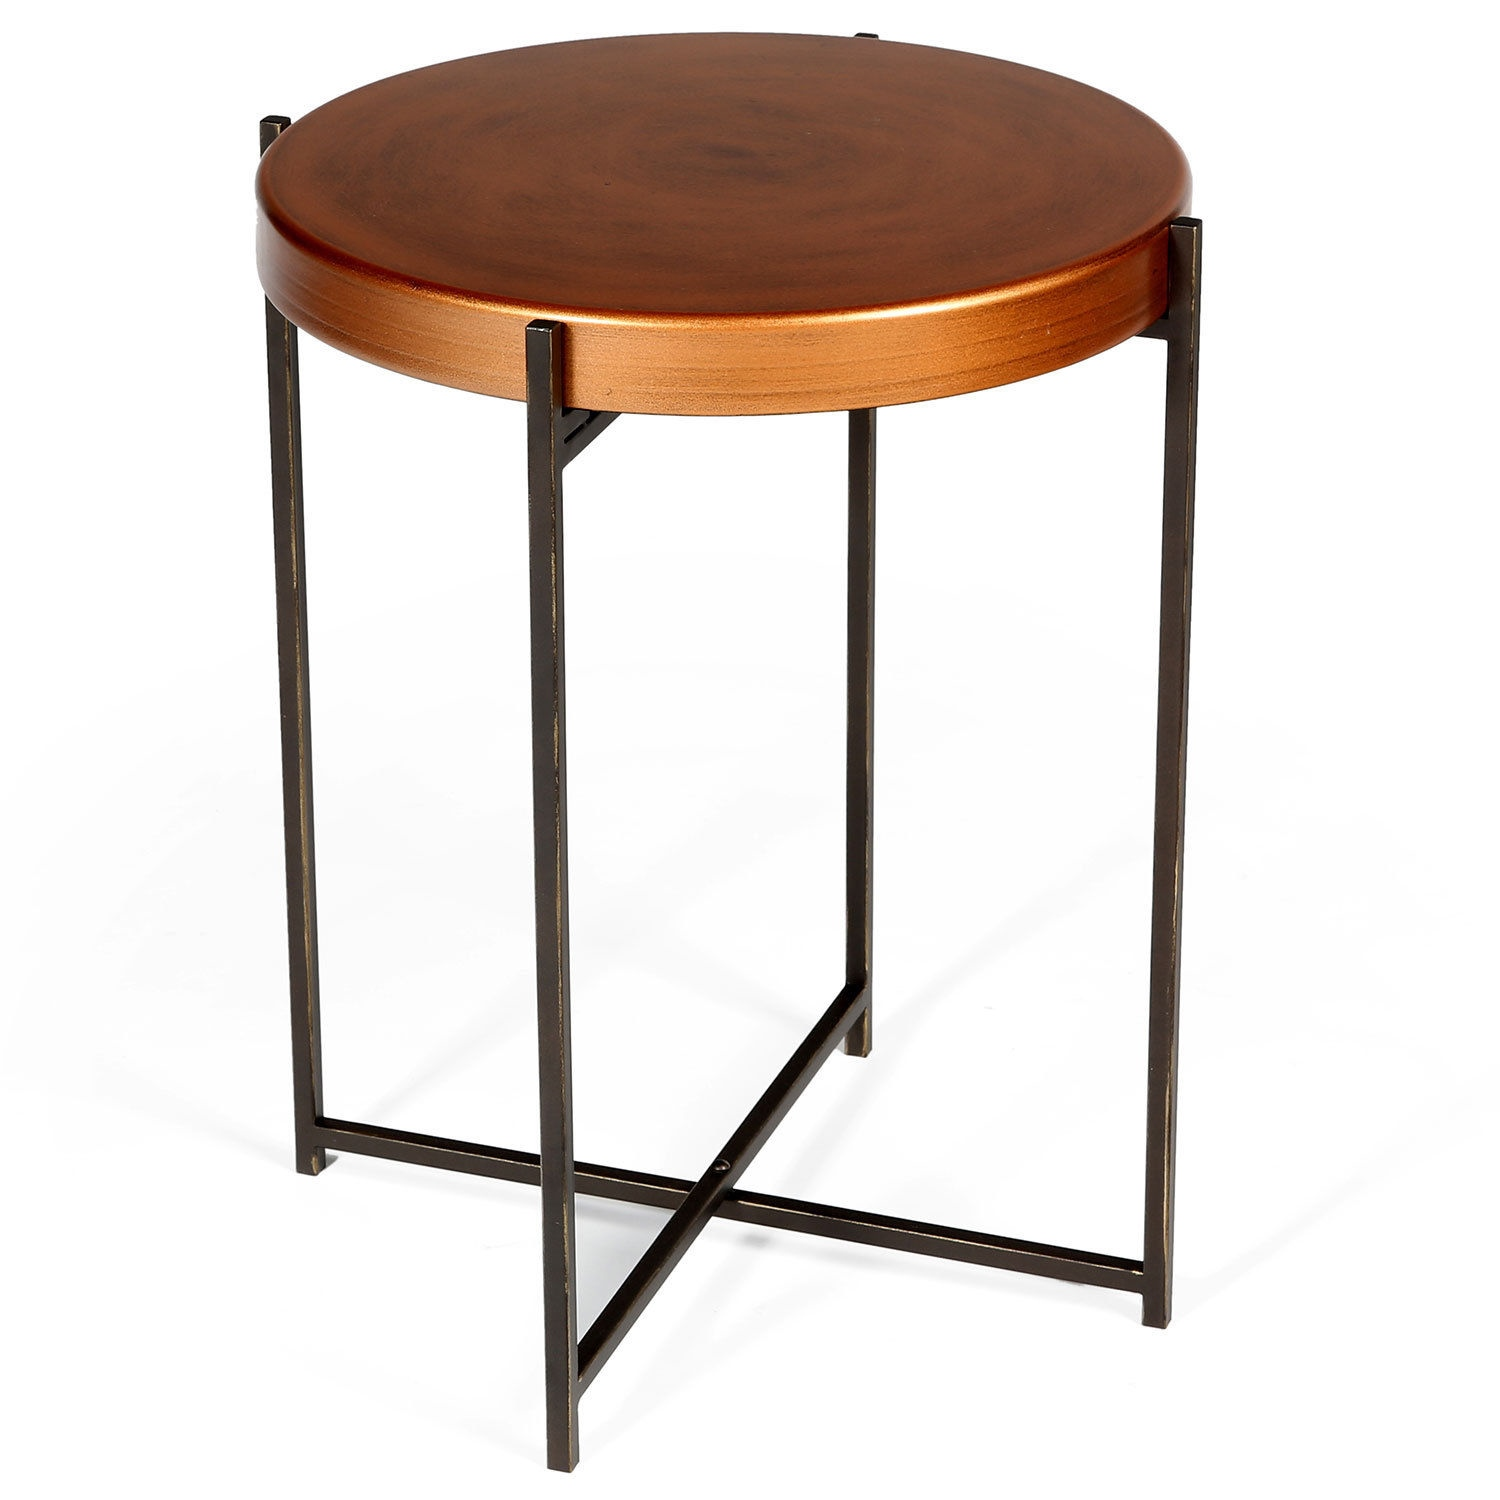 Copper round side table lamp table bedside table folding for Round side table